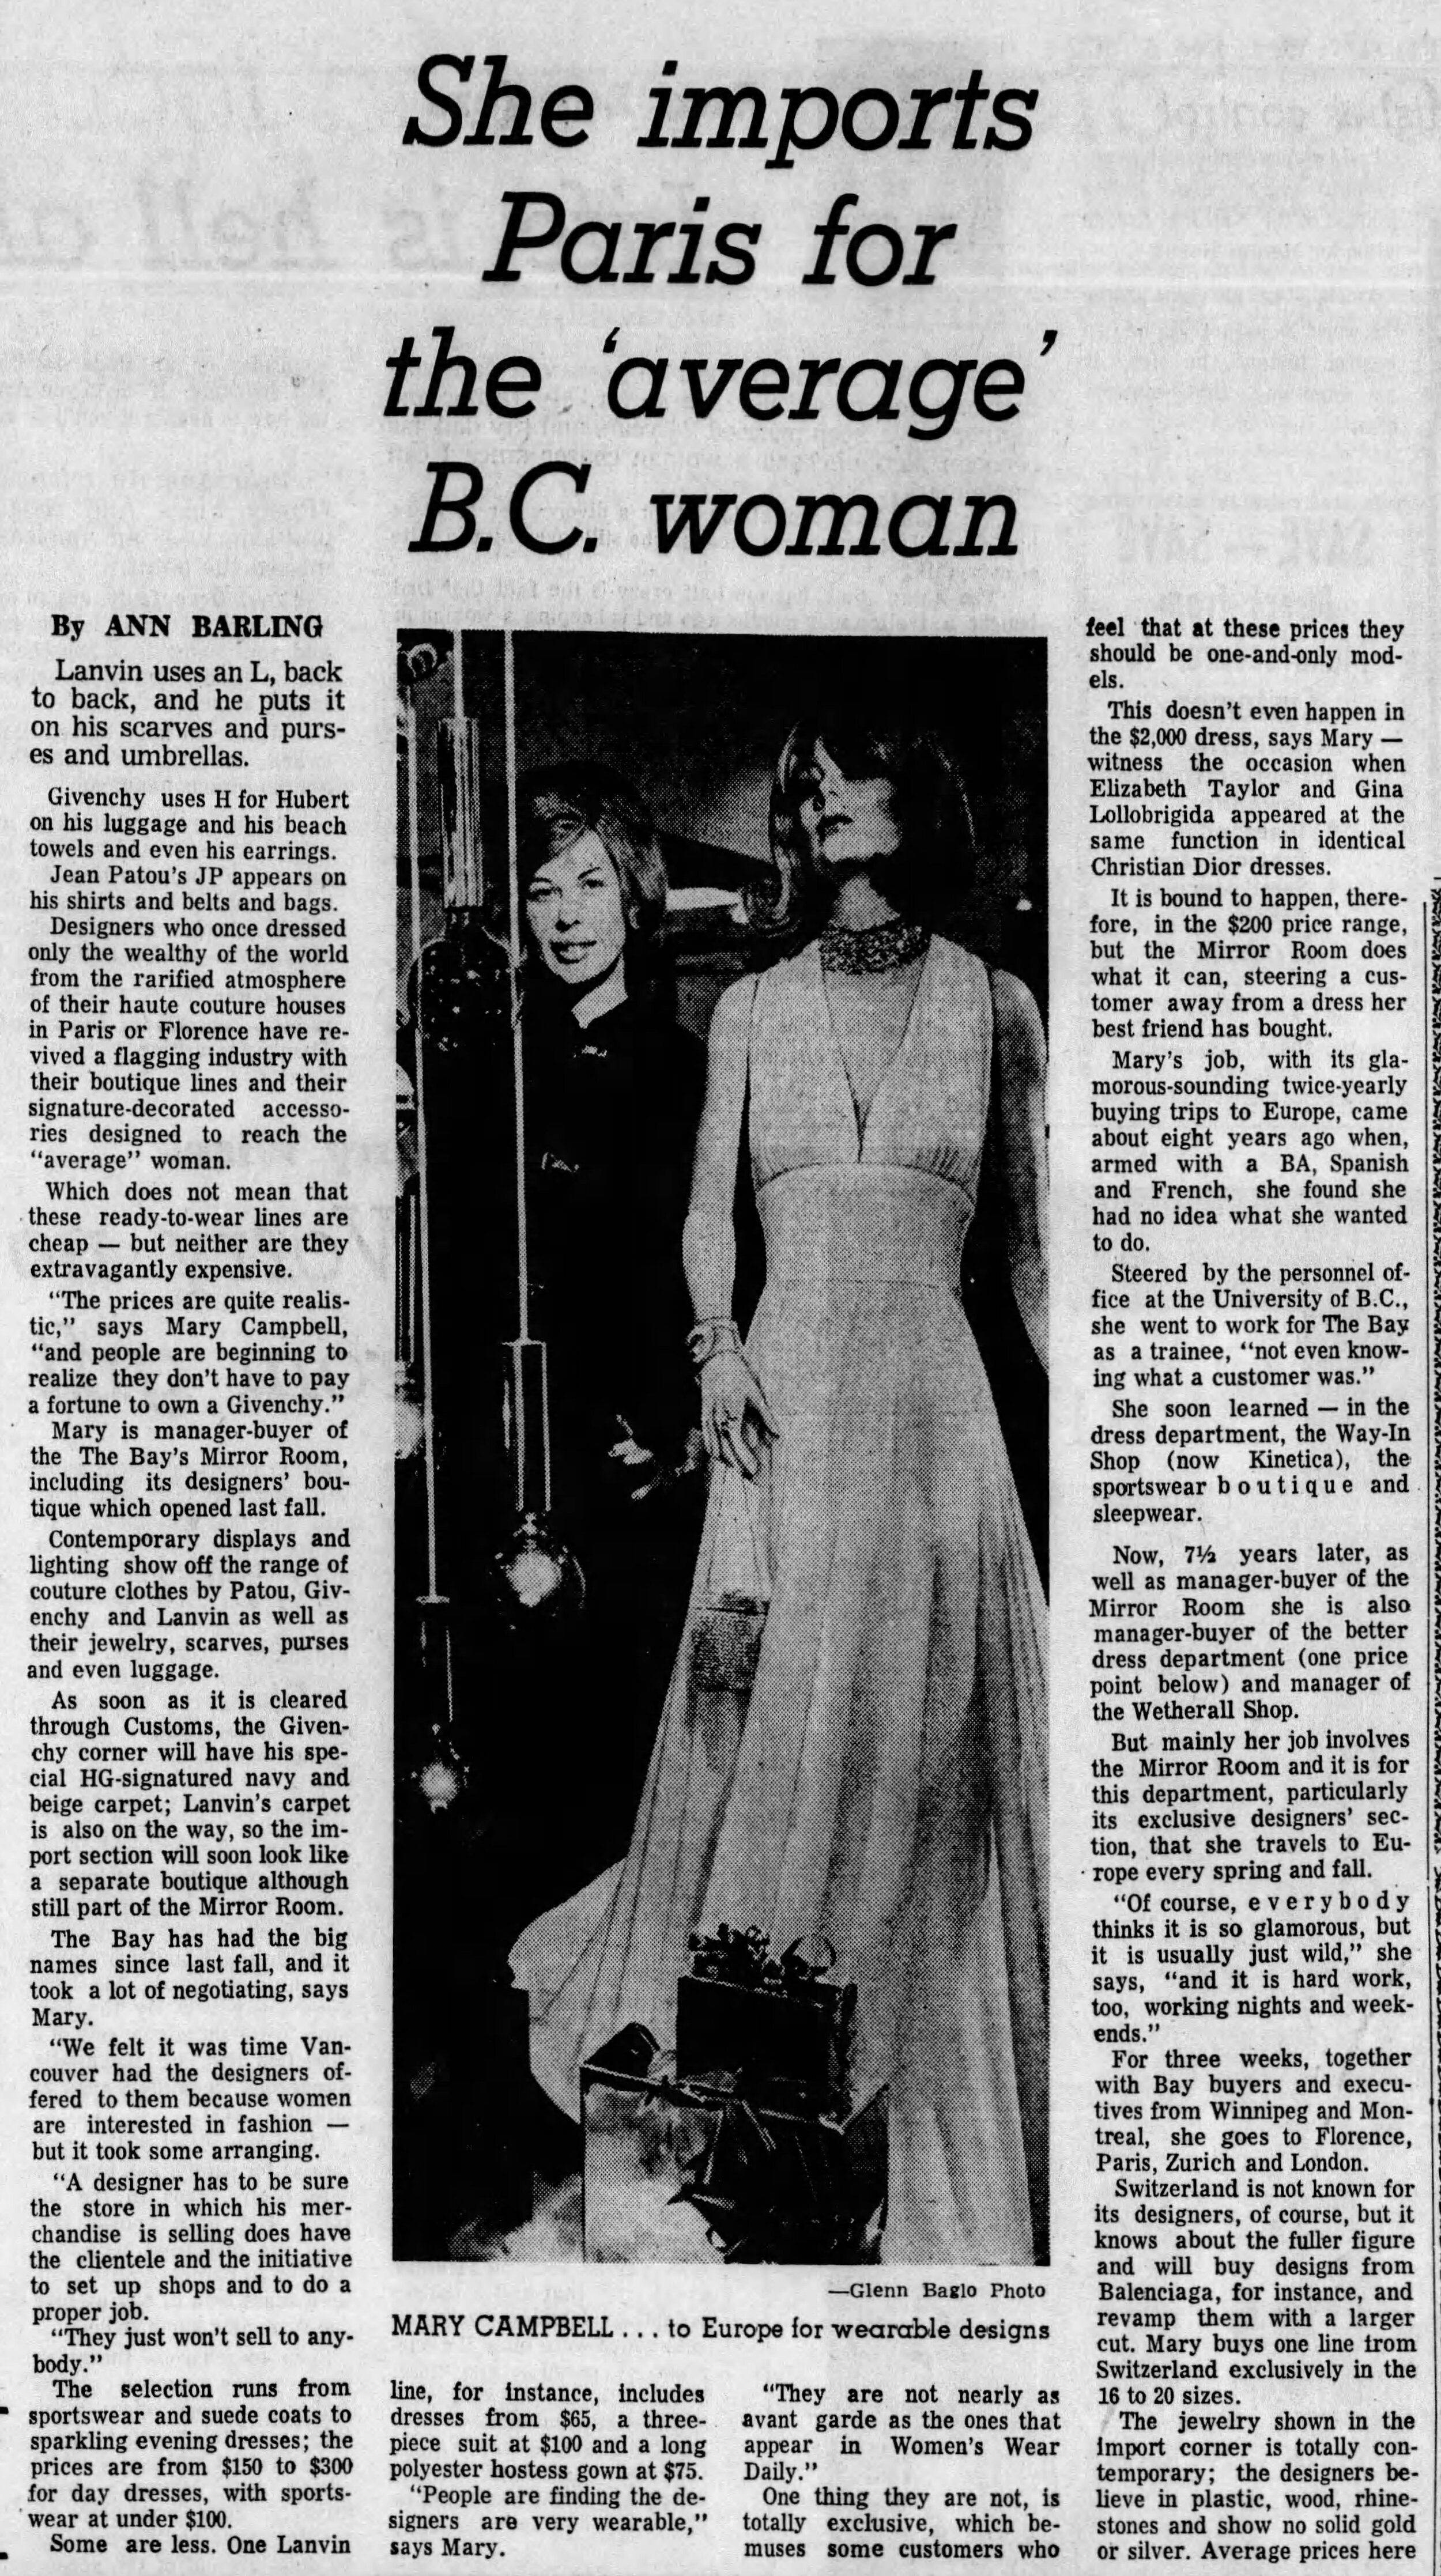 Newspaper clipping from the Vancouver Sun on December 6, 1972. Image via newspapers.com